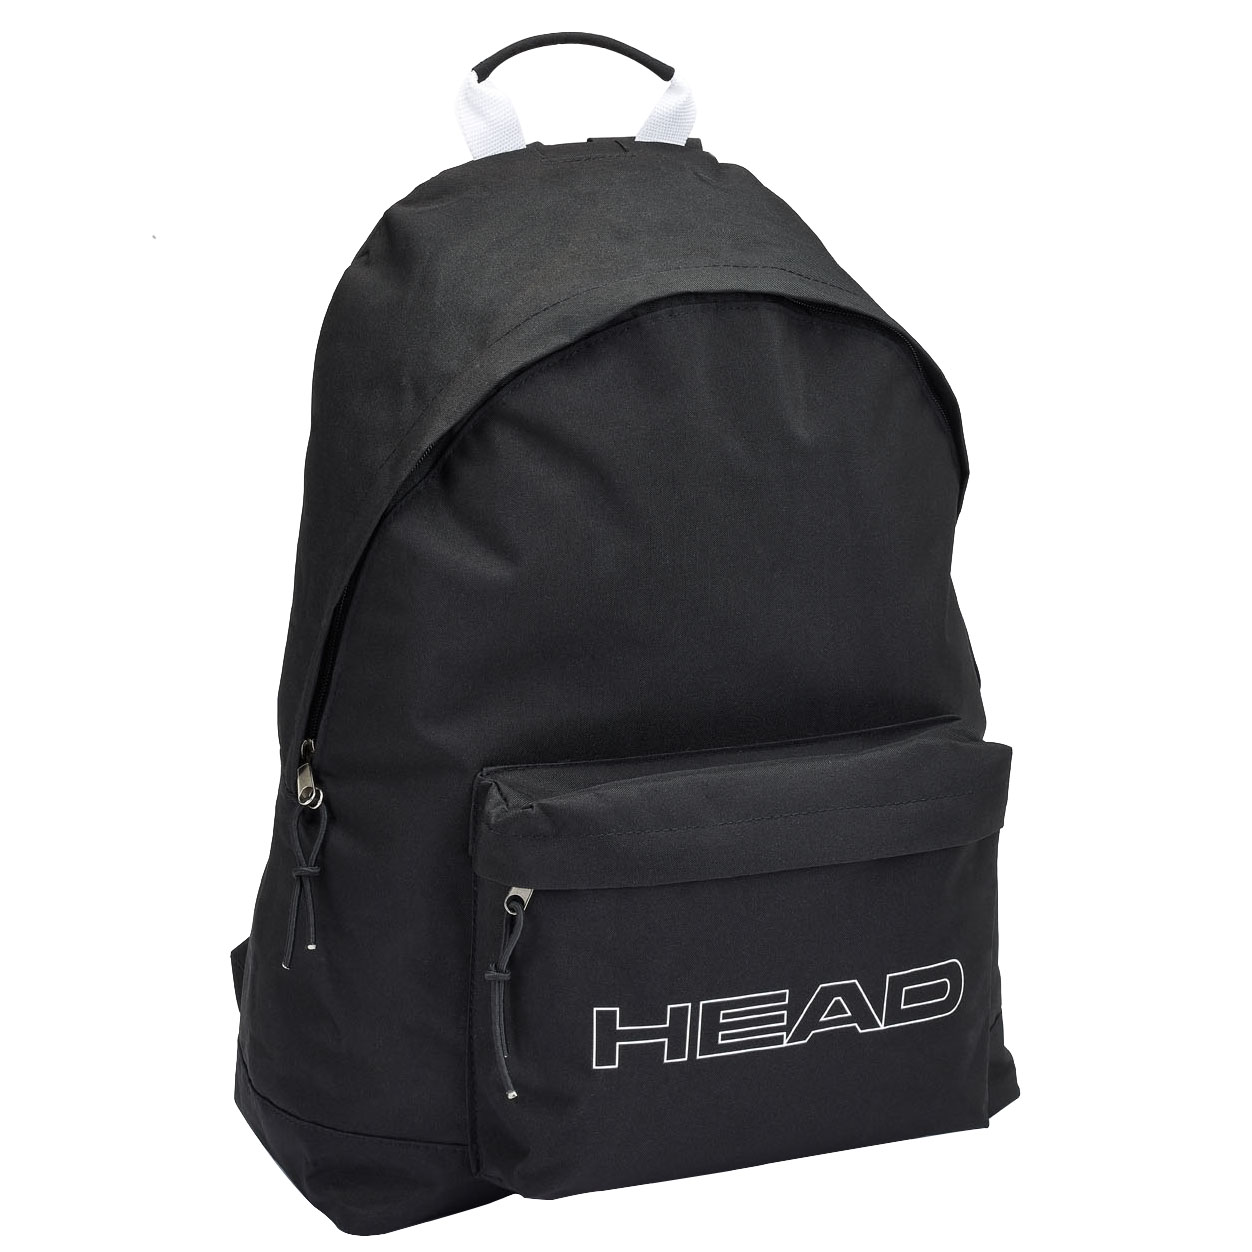 Head Nyx Backpack - Black